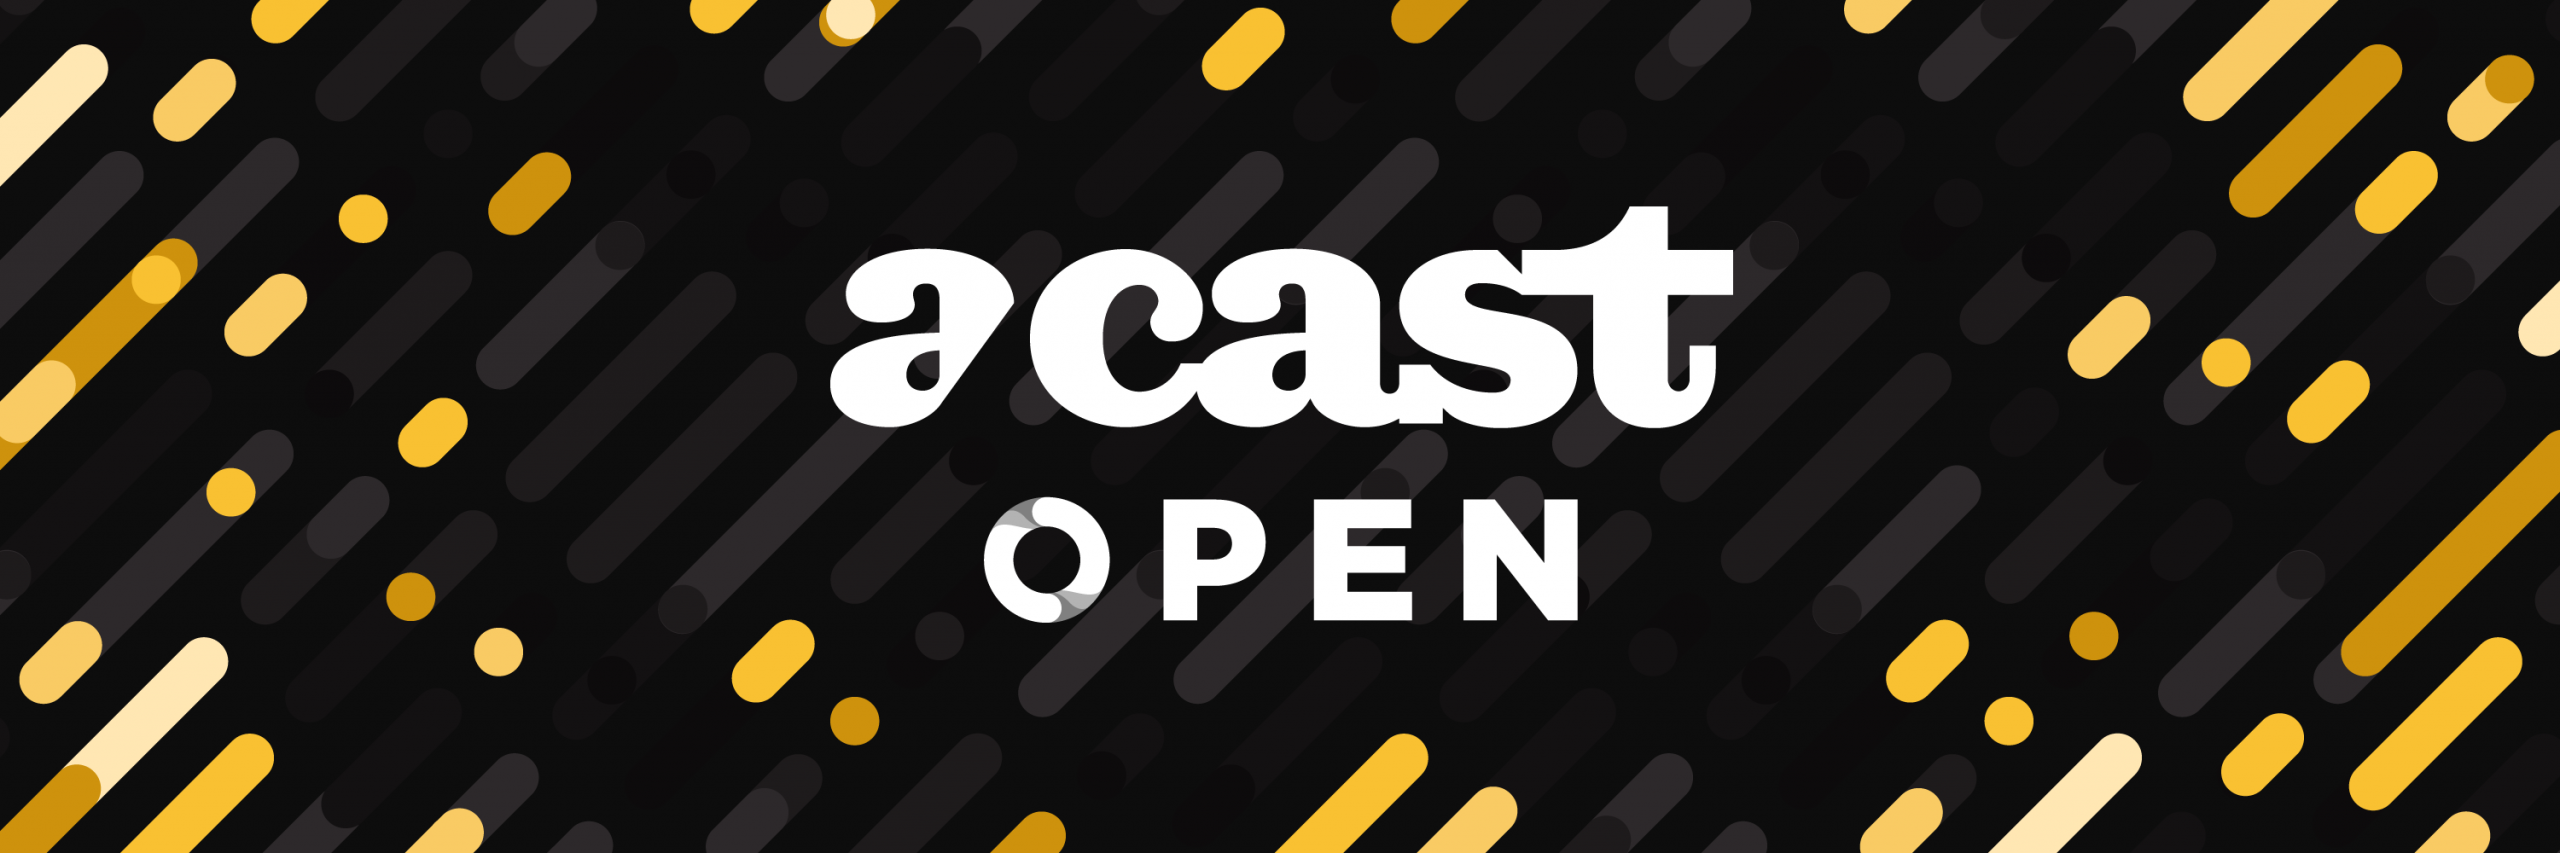 Acast Open launches to give brands an on-ramp to podcasting | DeviceDaily.com